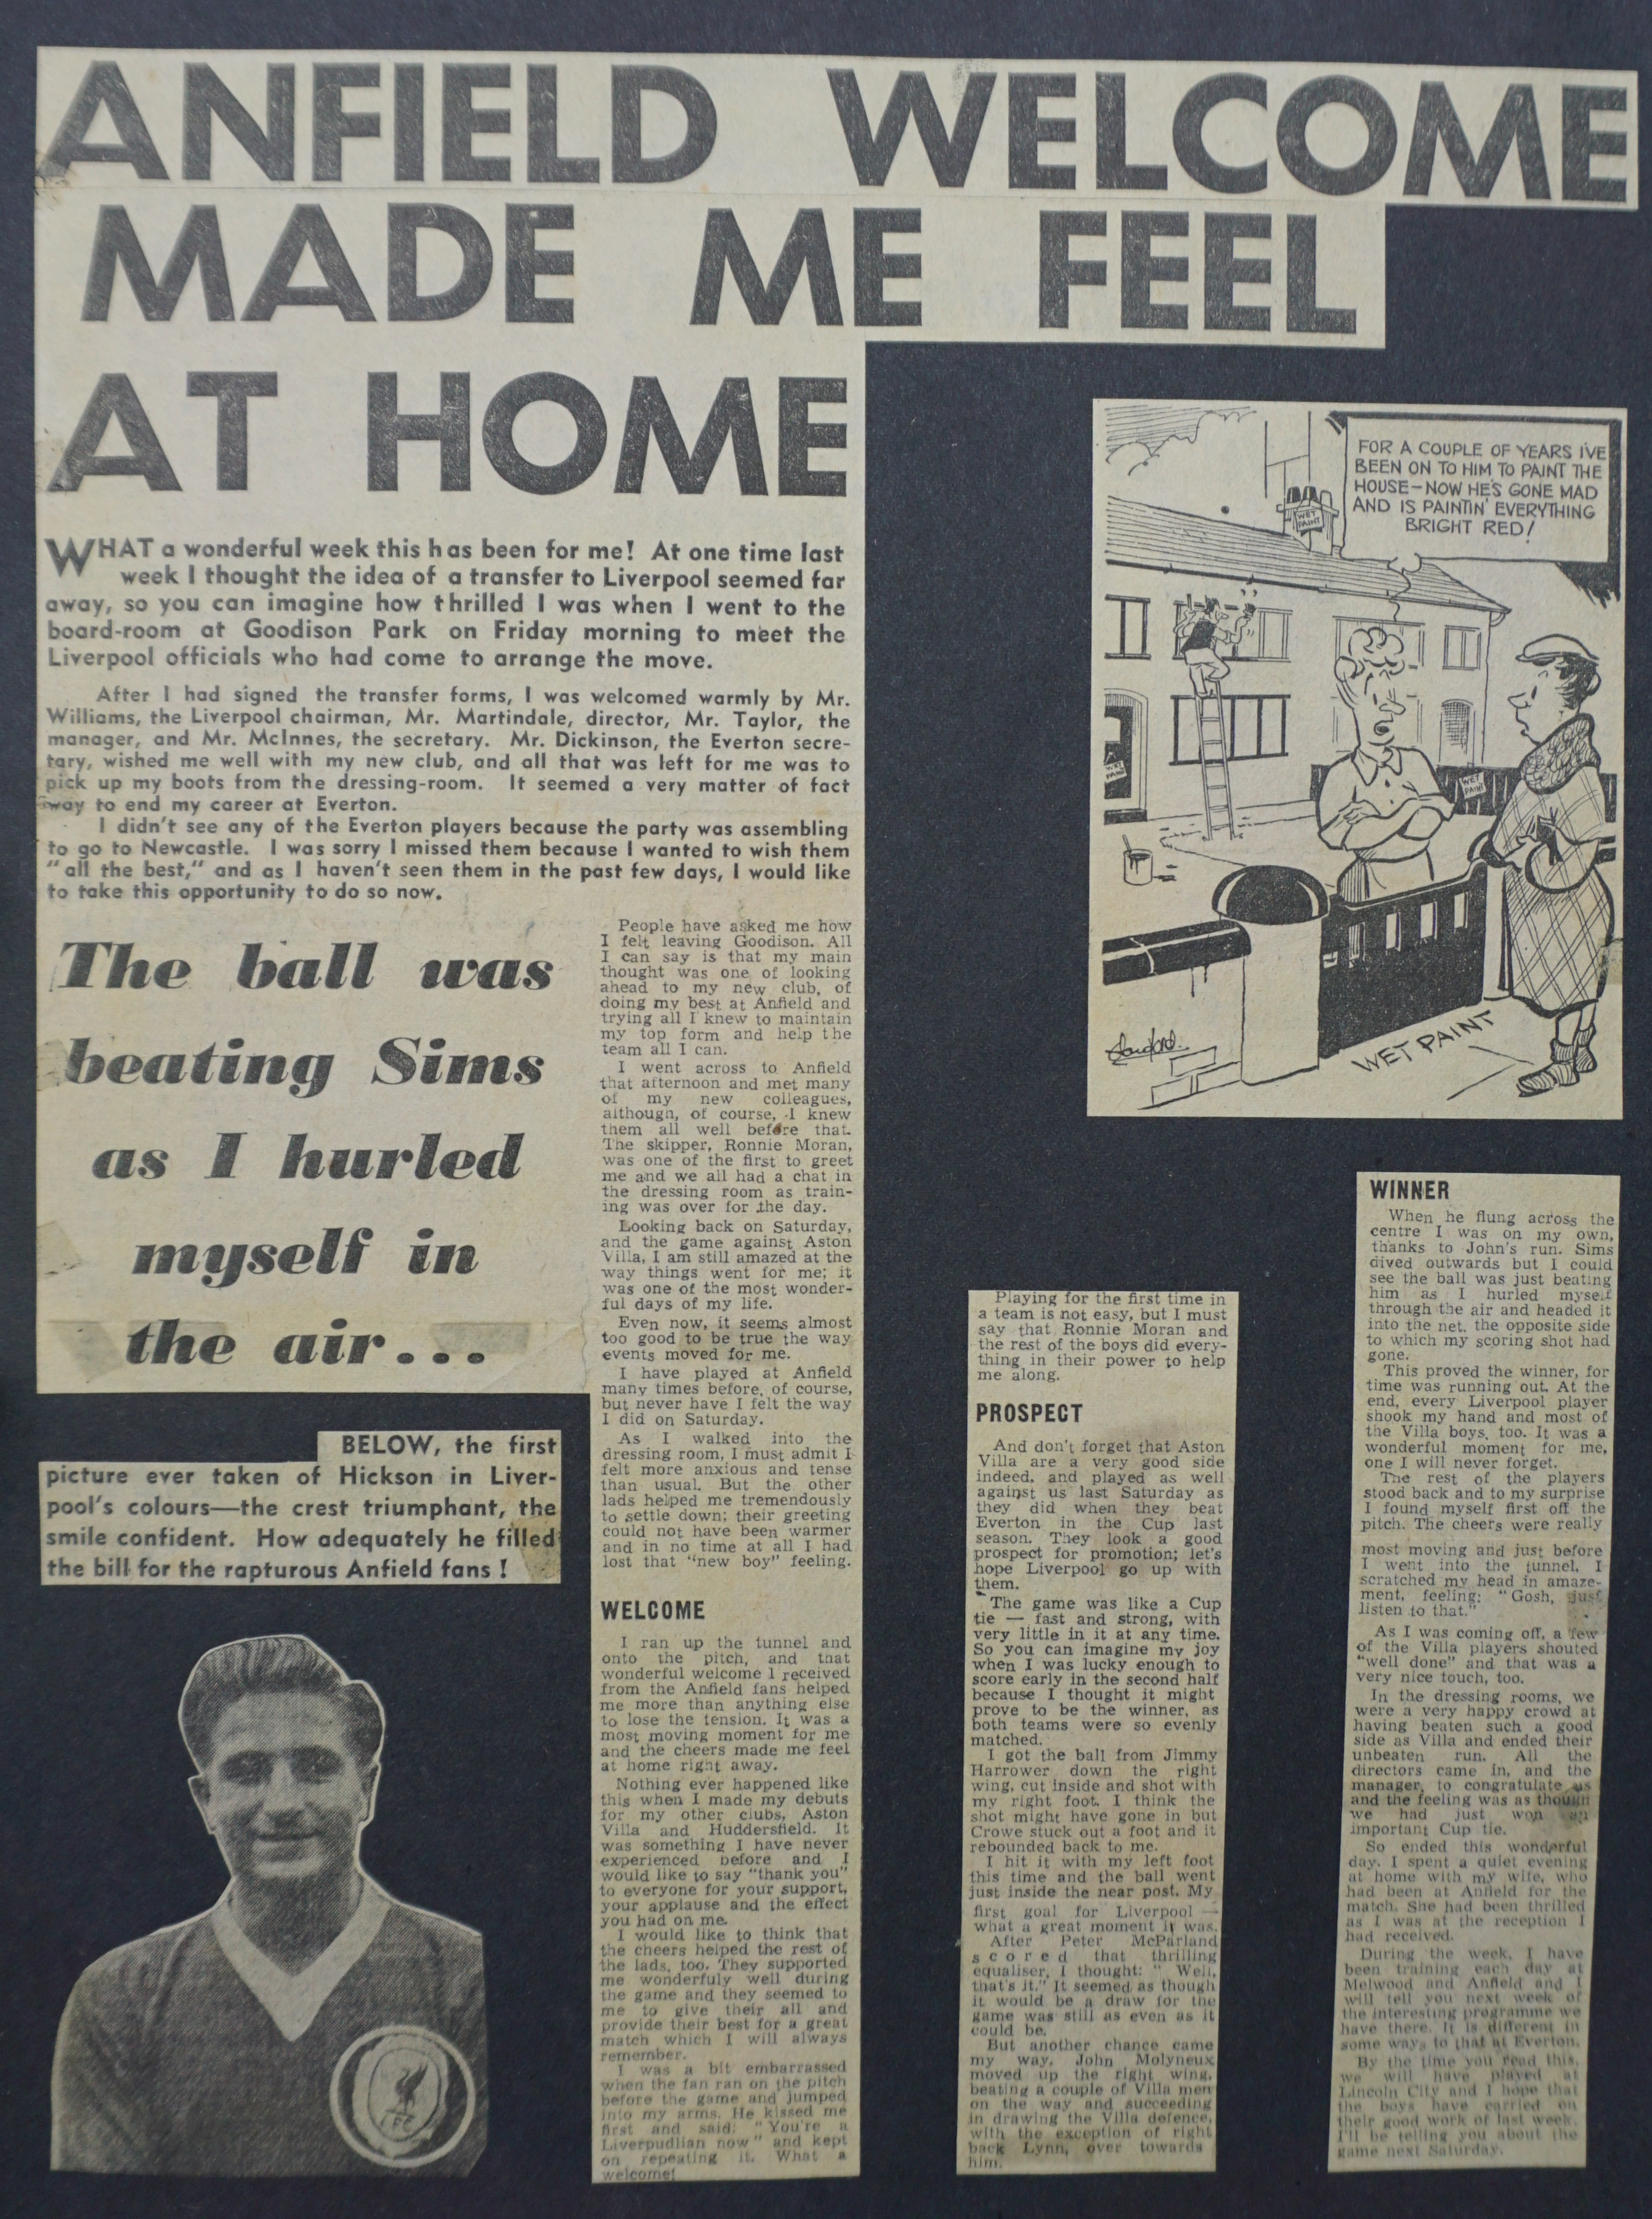 Anfield made me feel at home - November 1959